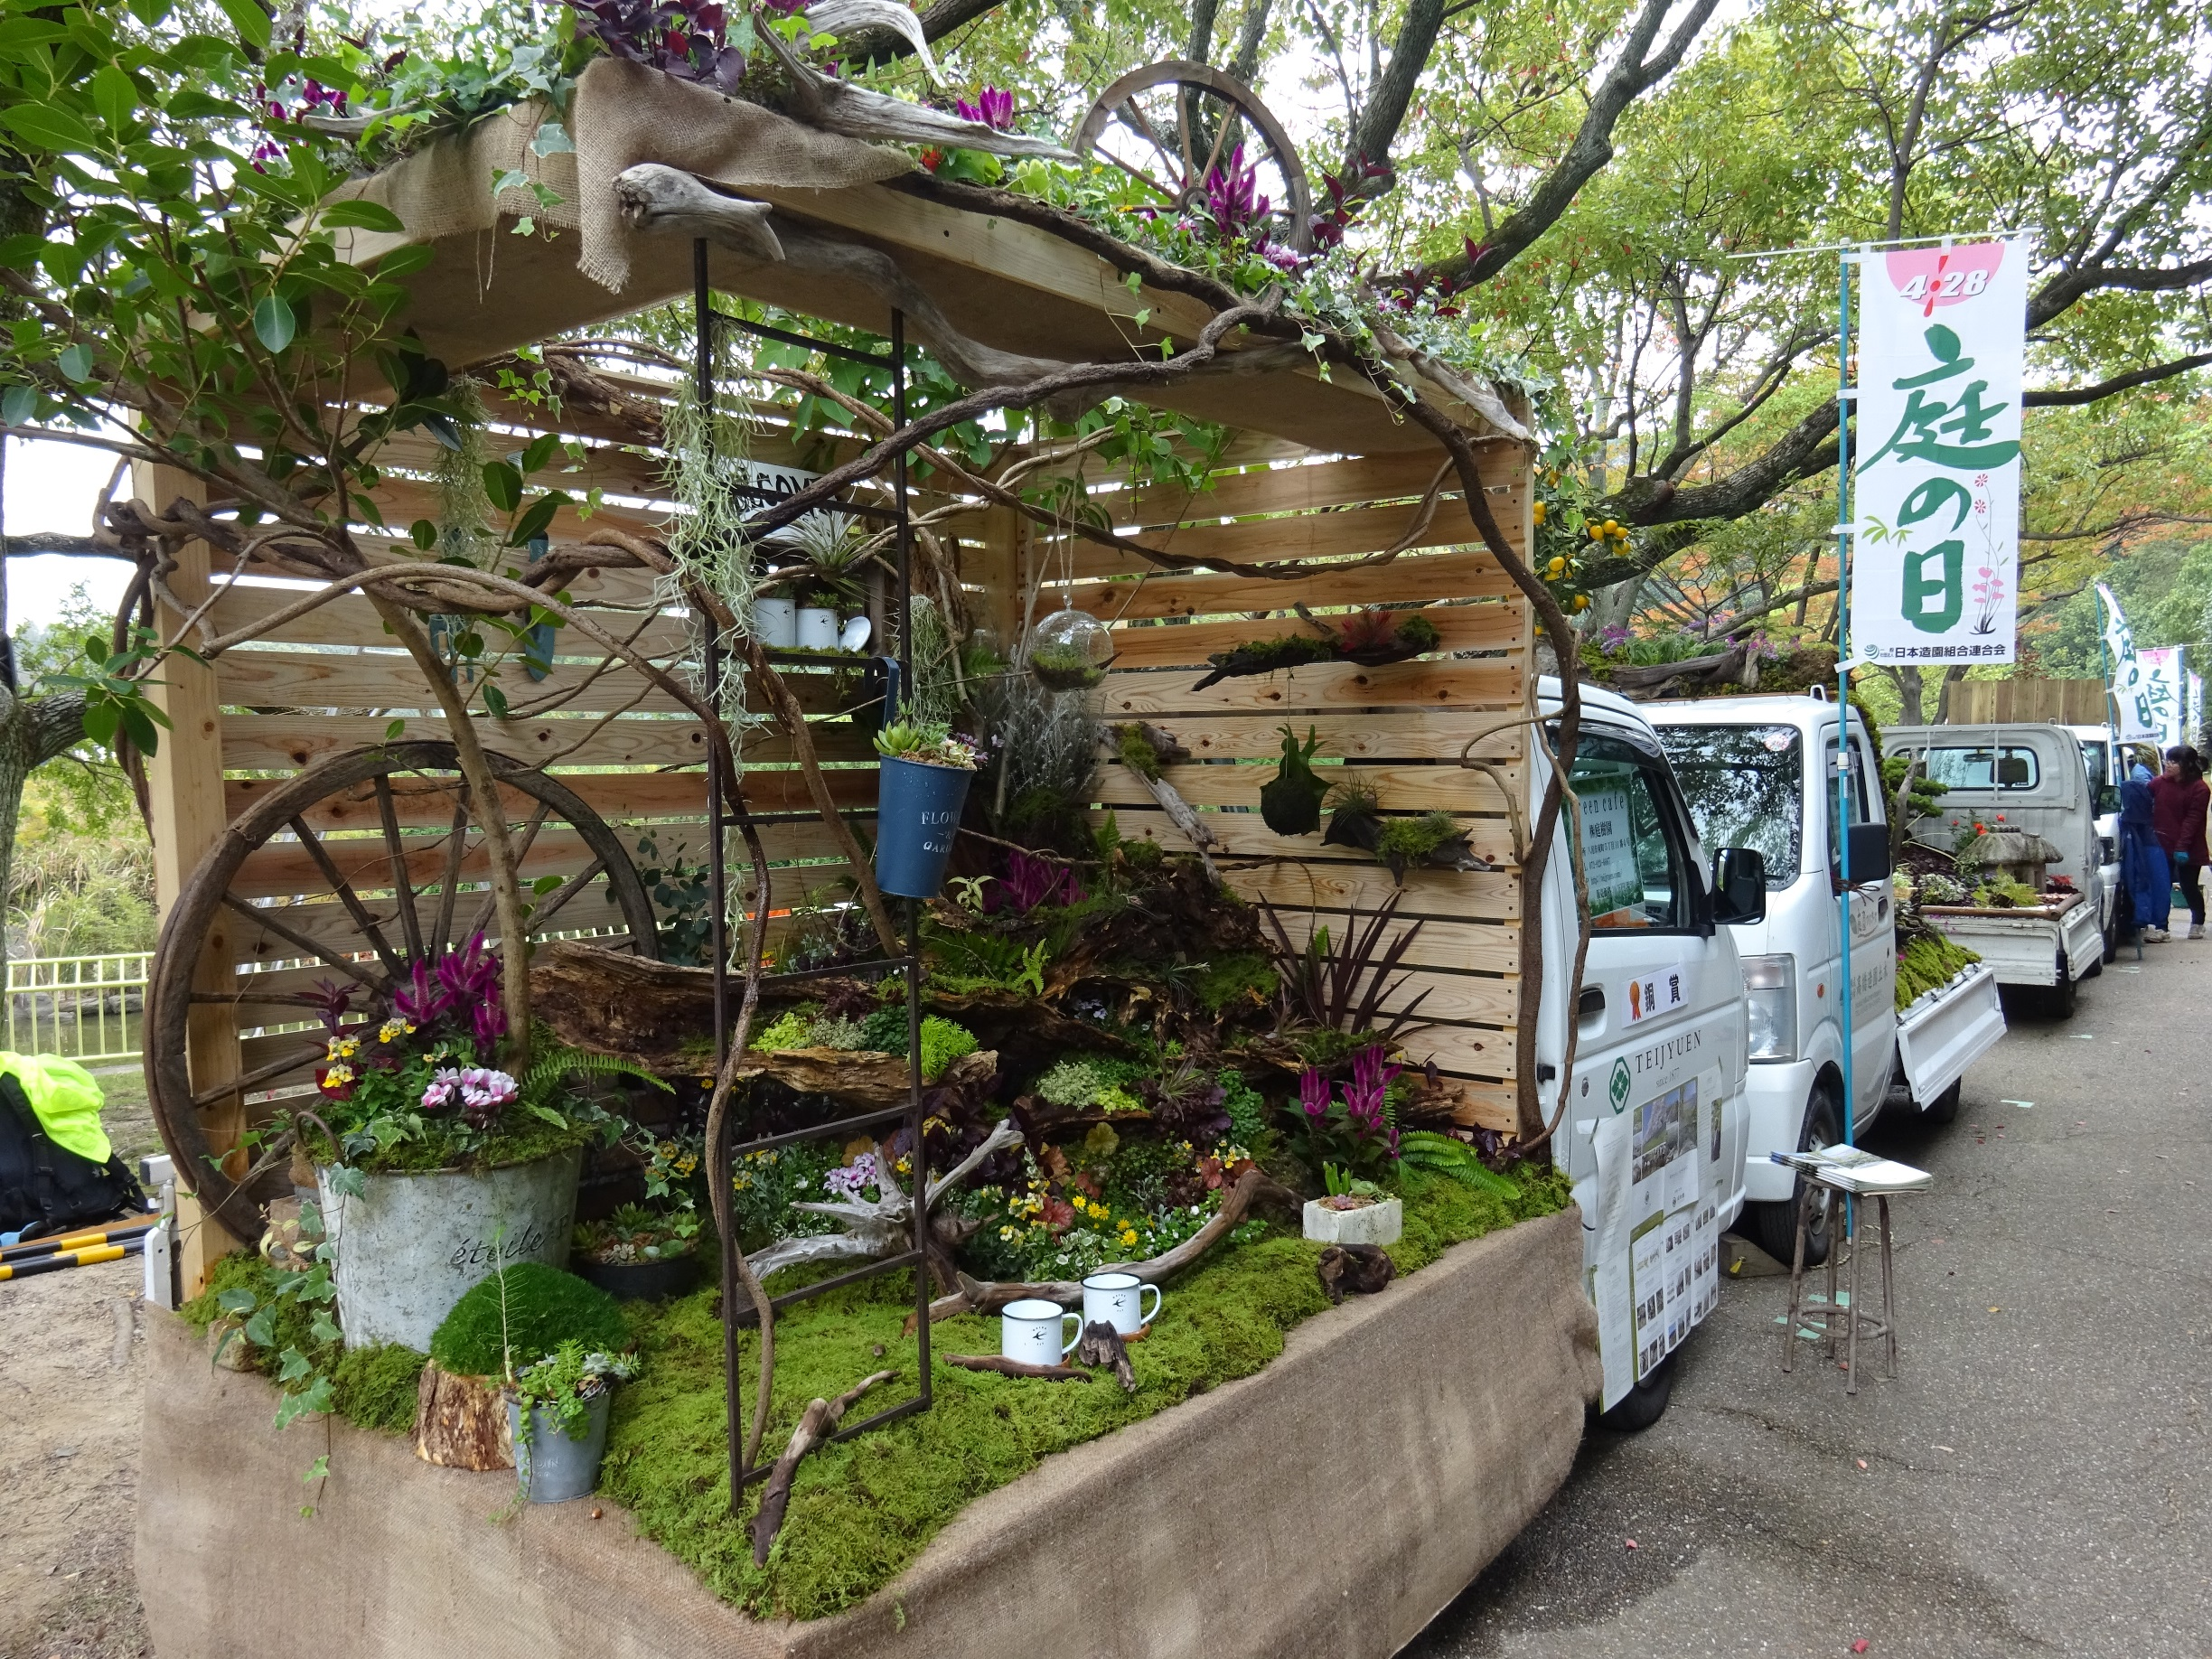 Pickup Truck Gardens: Japanese Contest Celebrates Mobile Greenery ...